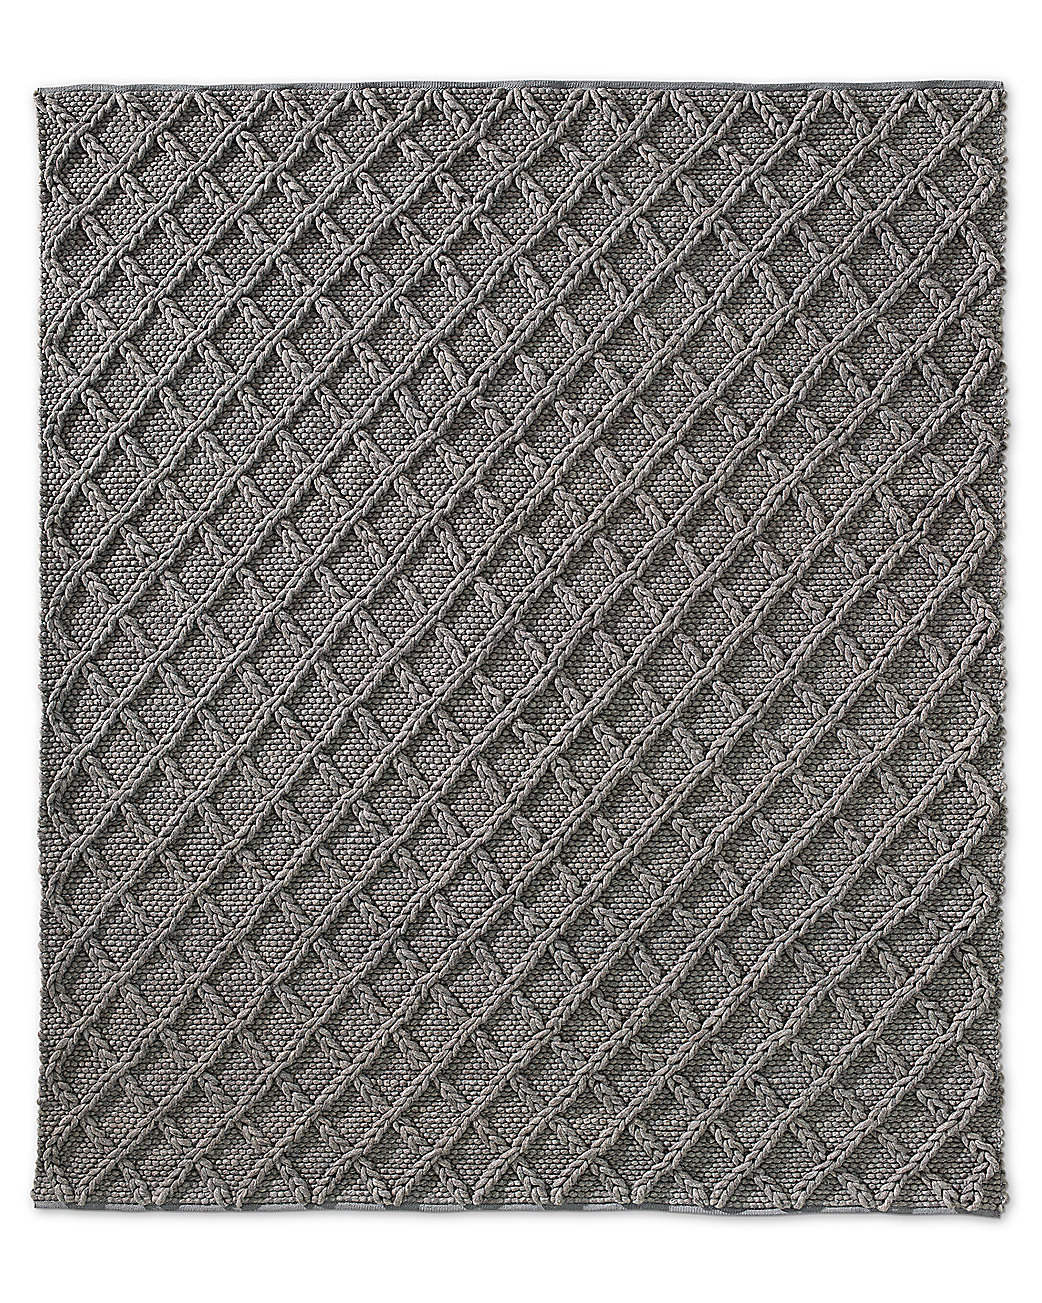 Raised Diamond Wool Rug - Grey